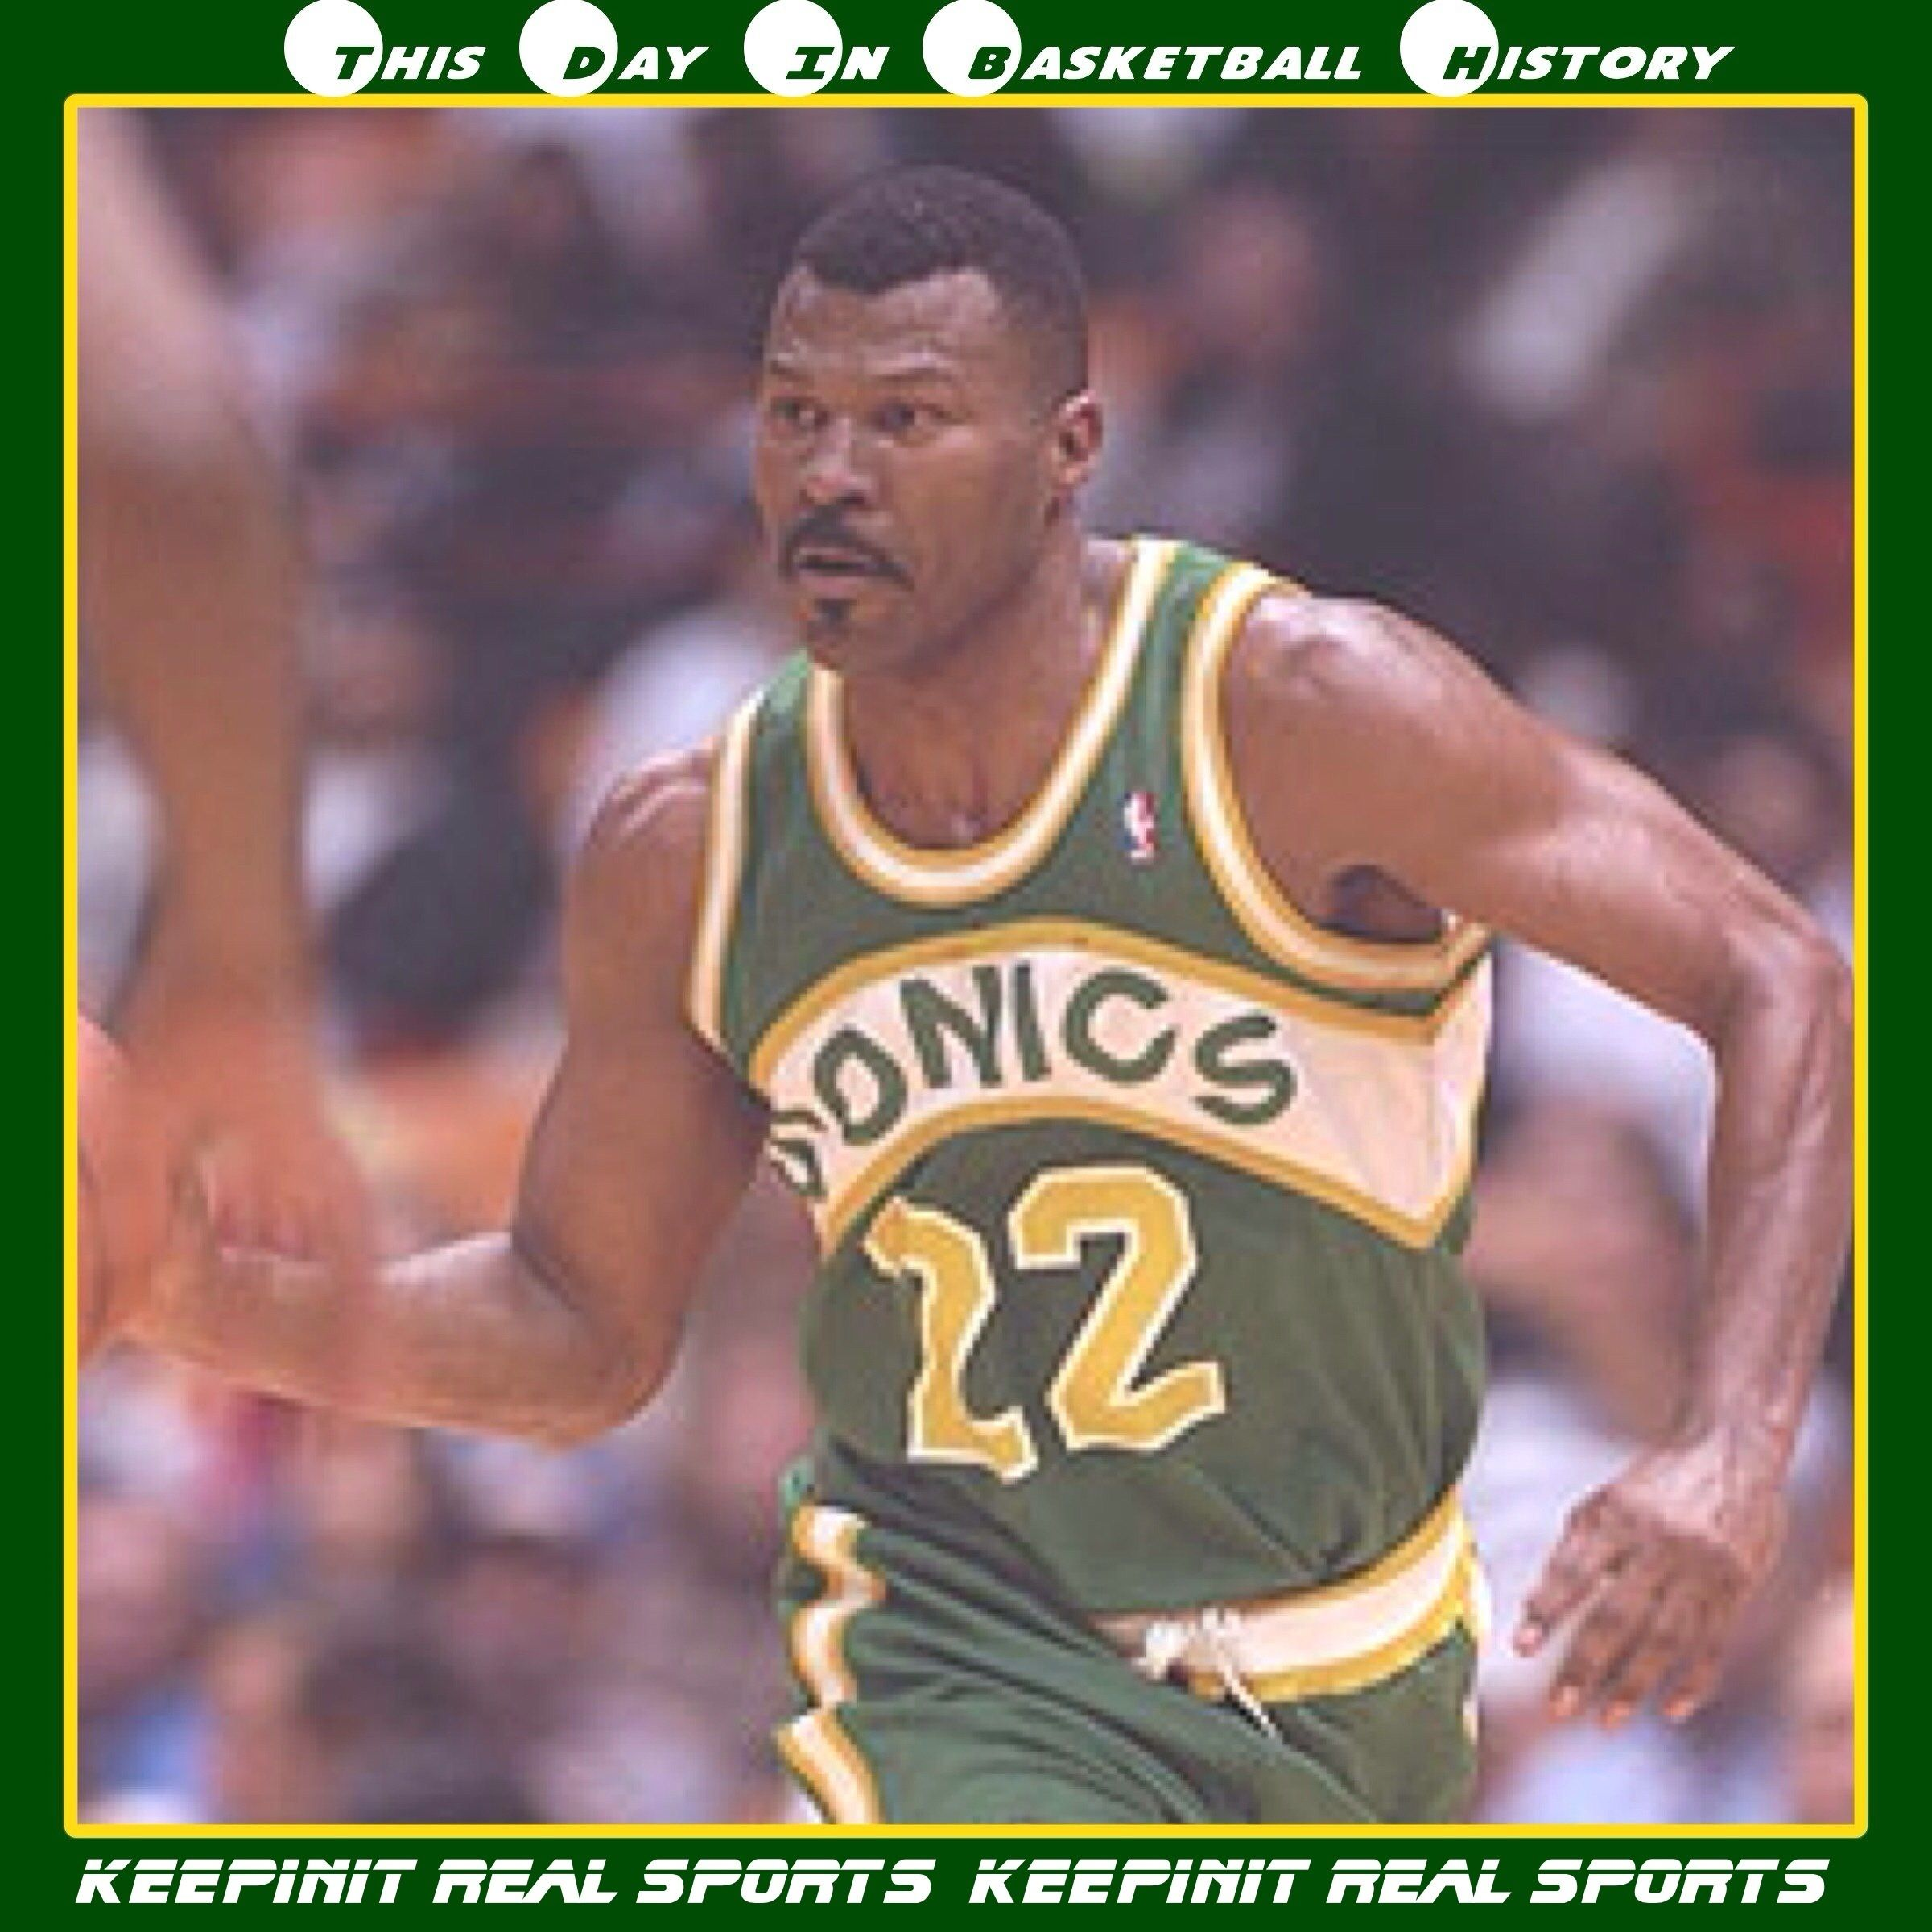 This Day In Basketball History November 15 1991 Ricky Pierce